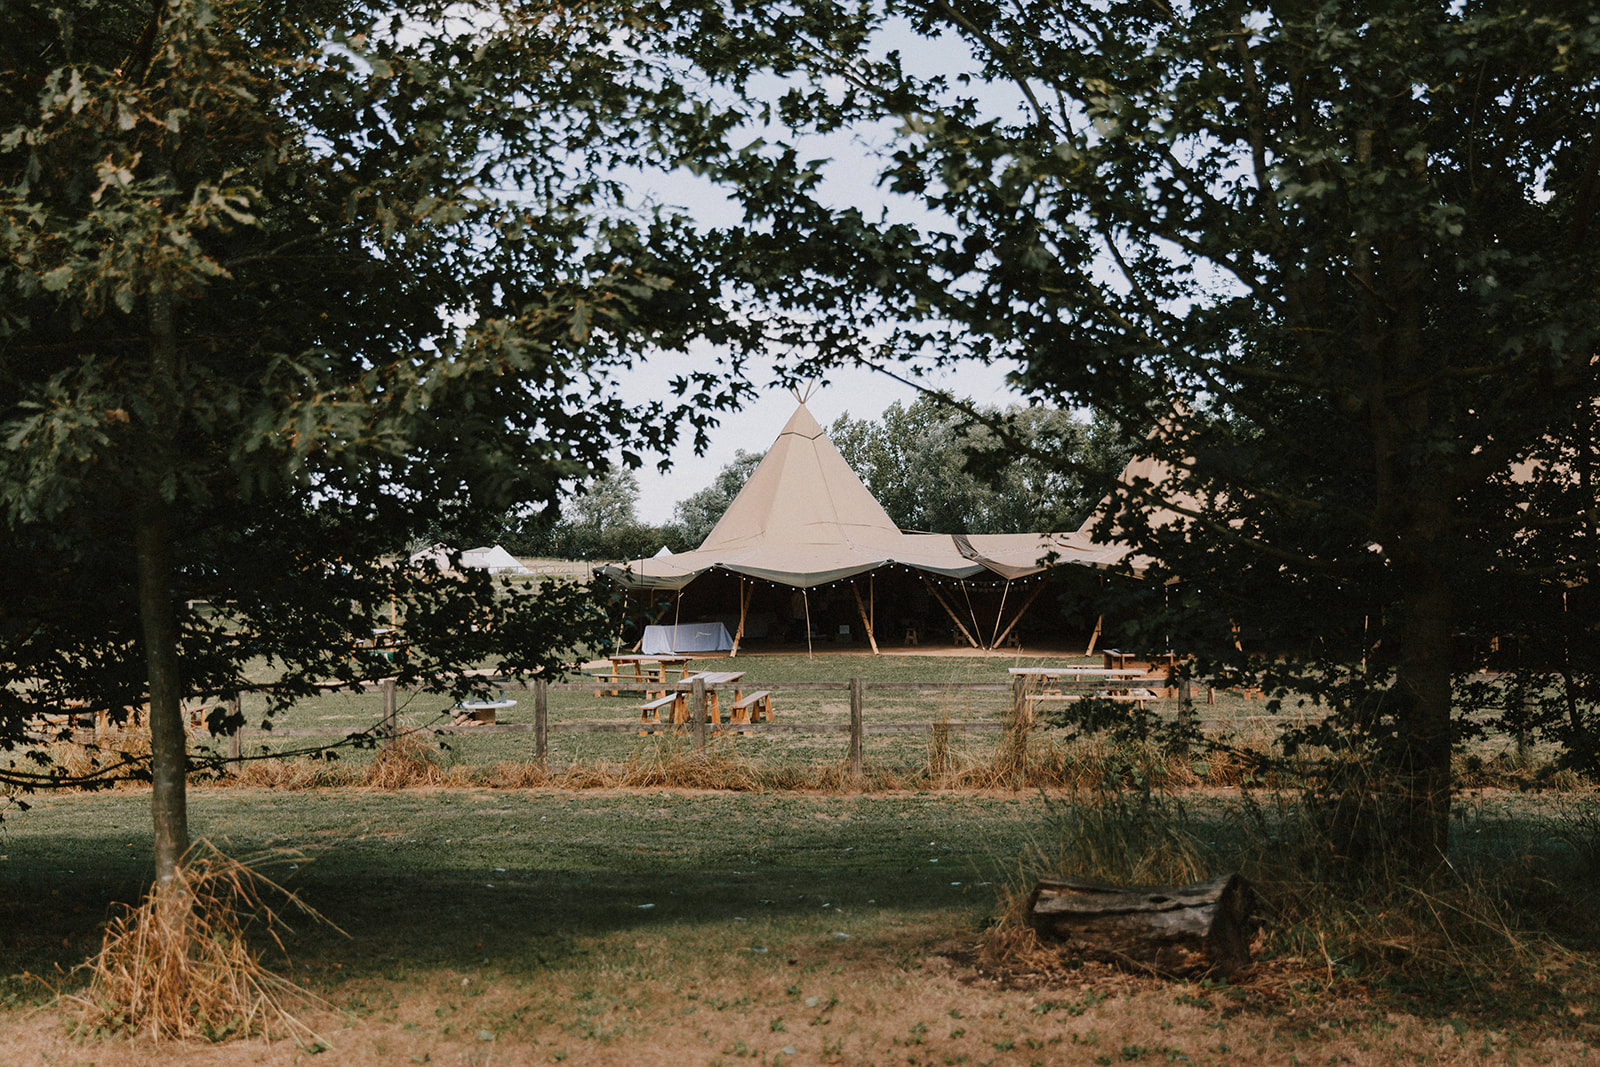 Outdoor wedding venue with tipi